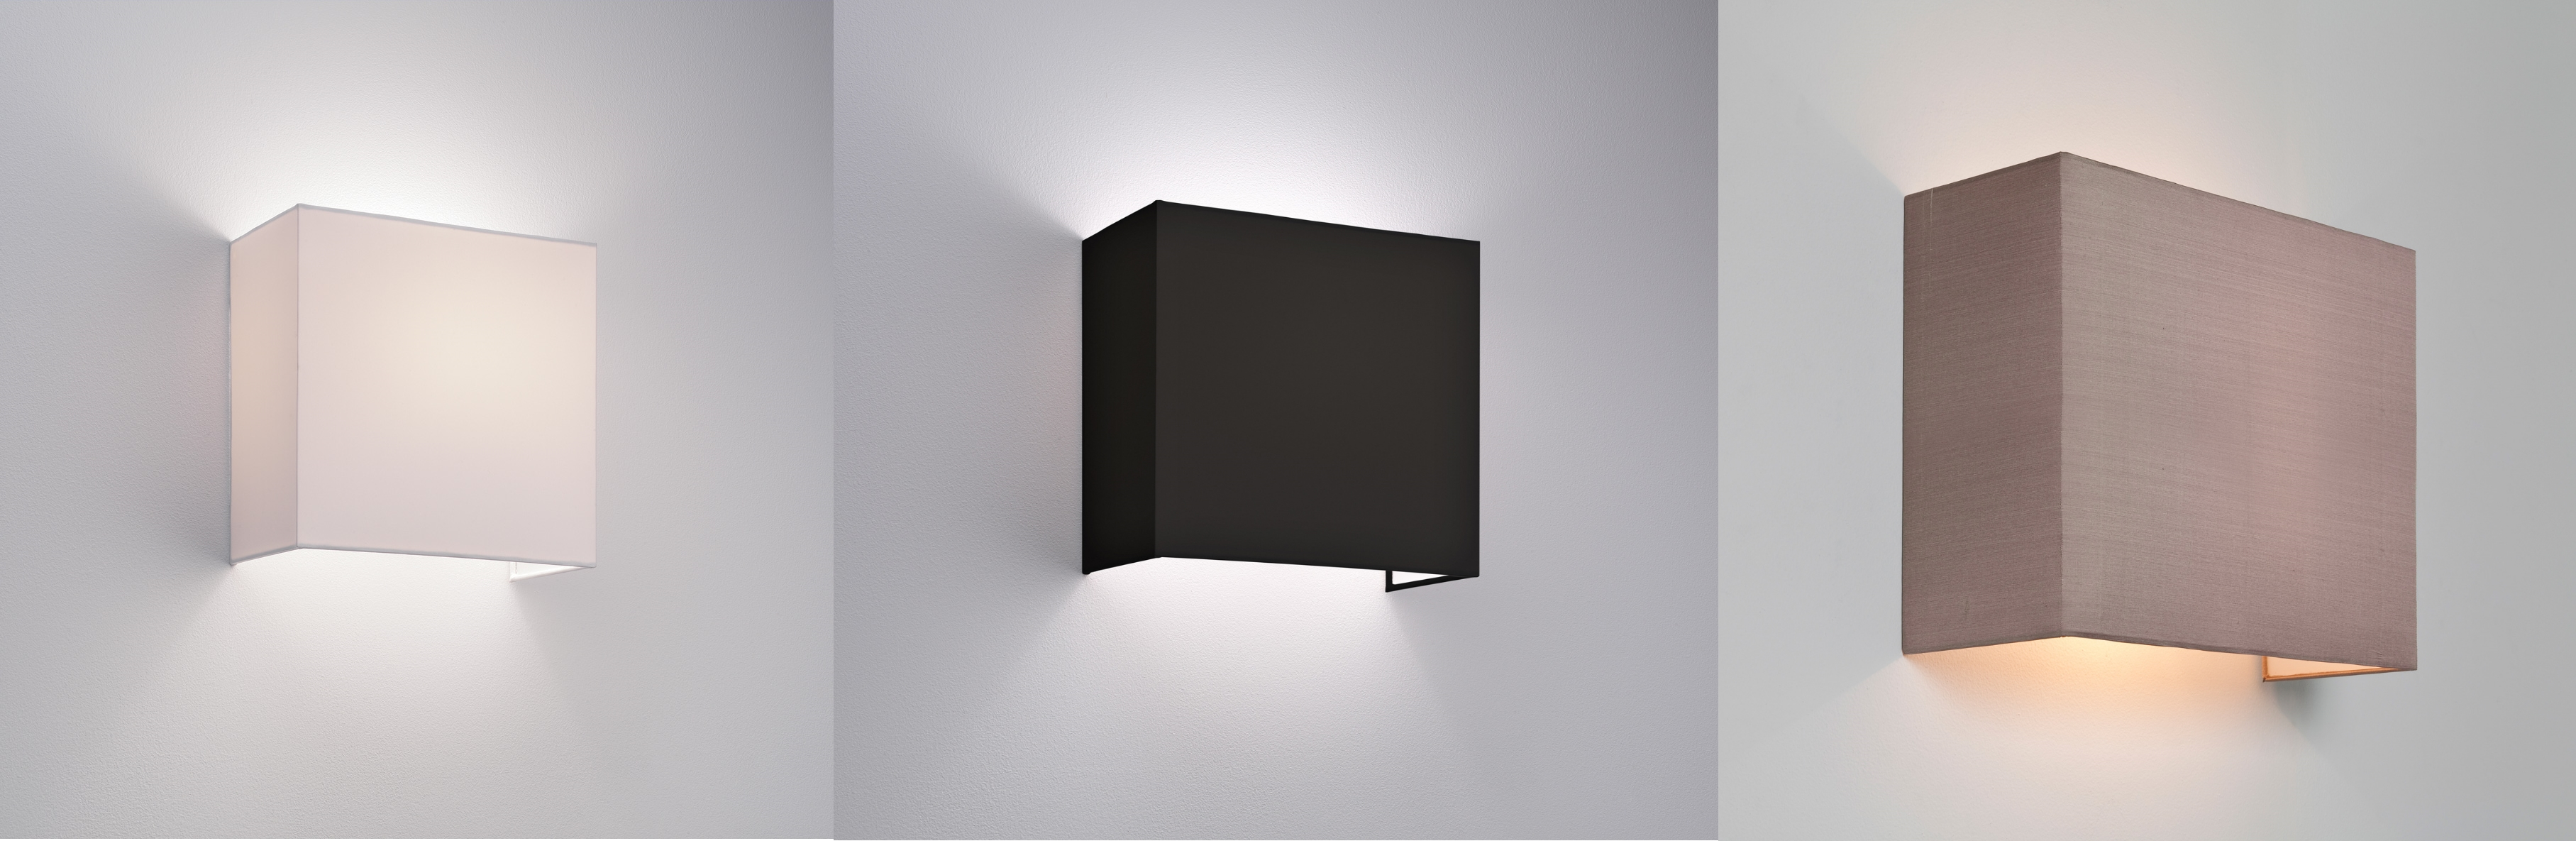 Lamp Shades Wall Lamps : Astro Chuo 250 fabric wall light shade 60W E27 white black oyster eBay